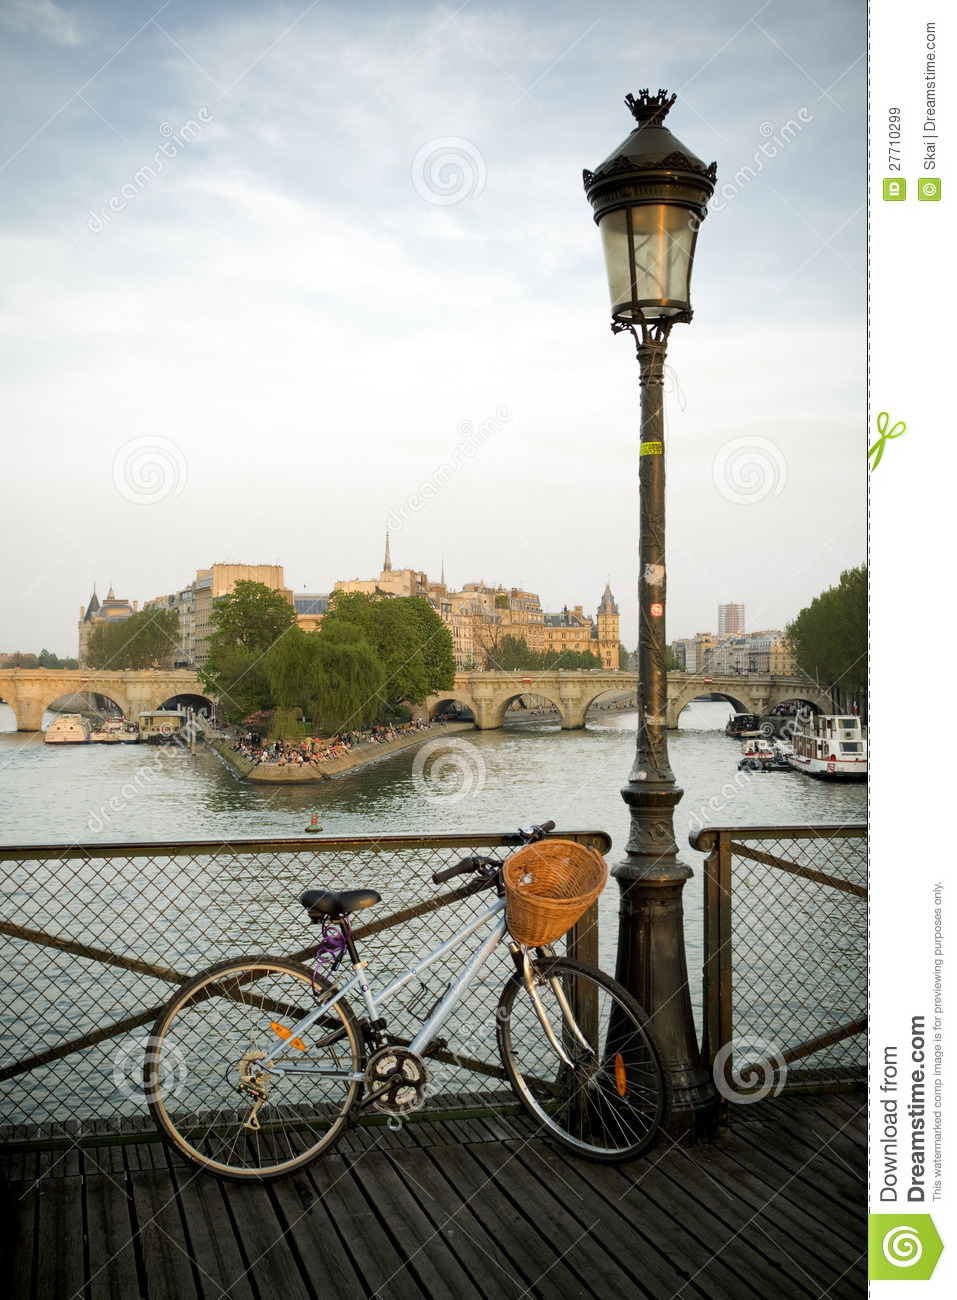 Pont des arts paris royalty free stock images image 27710299 - Pont des arts hong kong ...